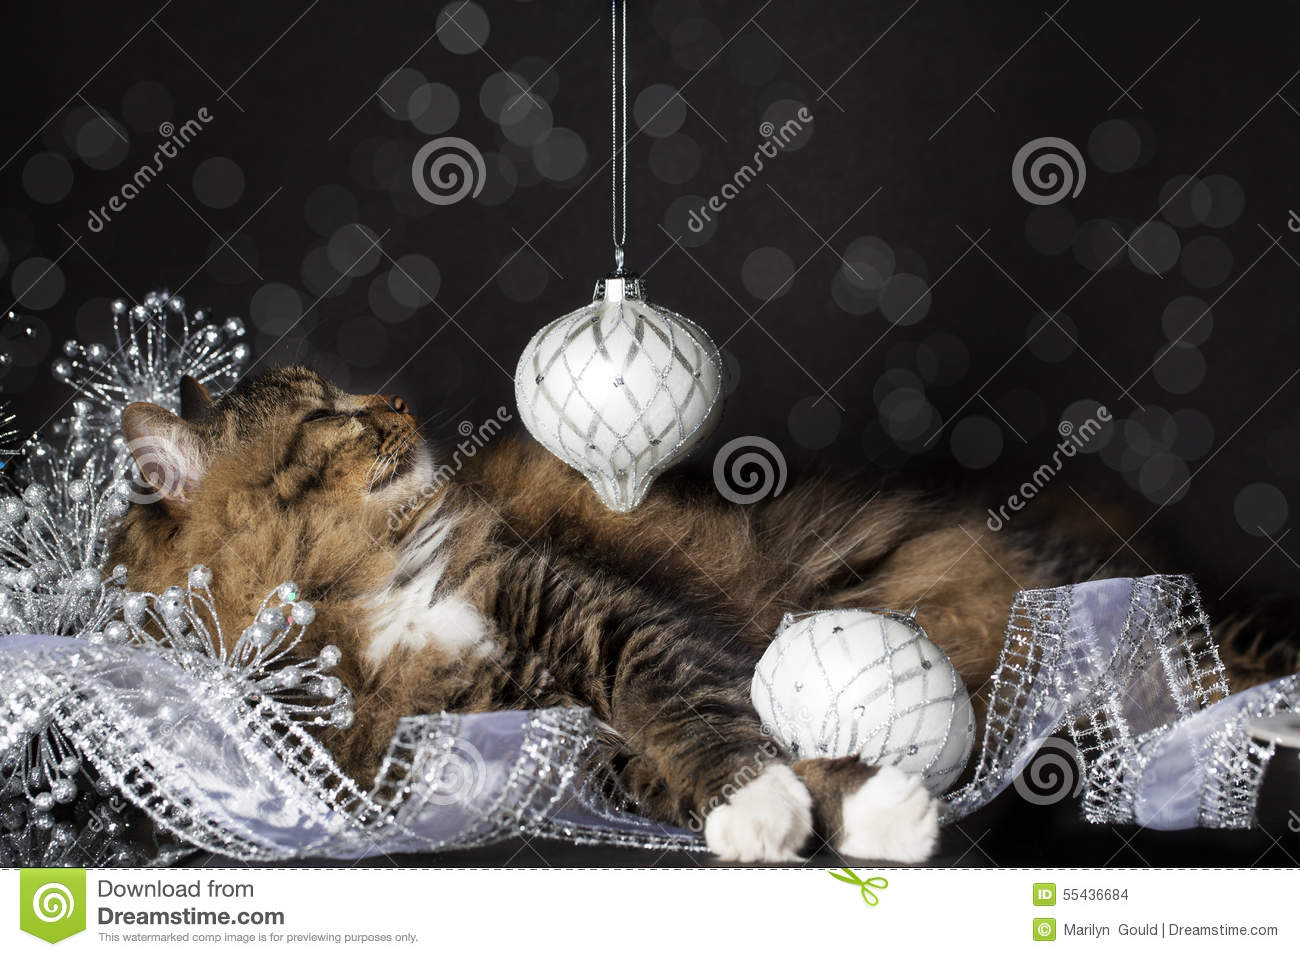 Cat Smiling at Christmas Ornament